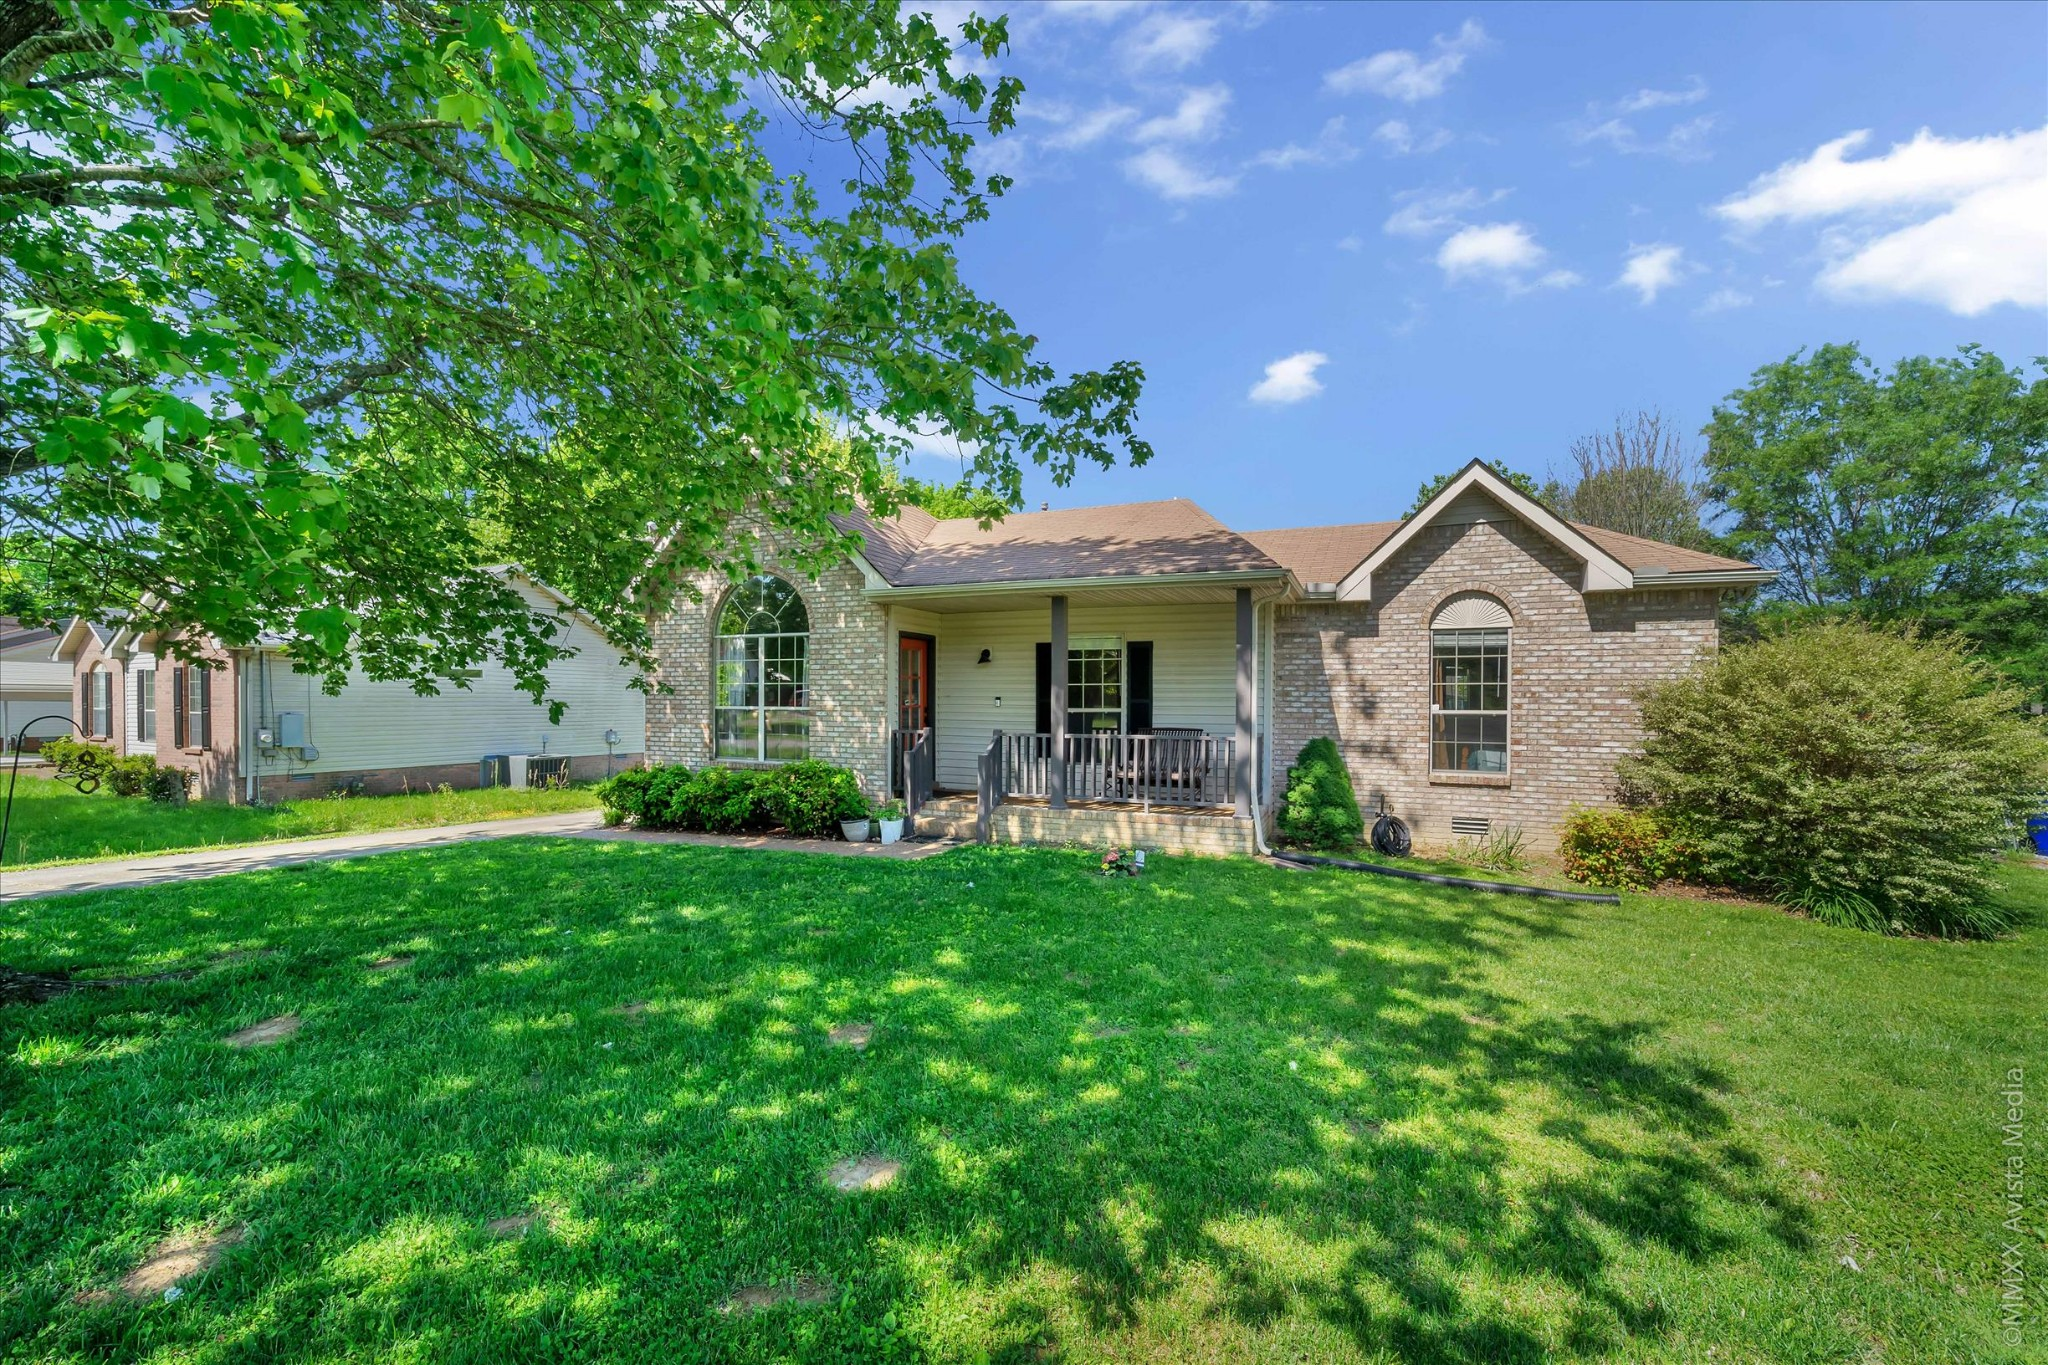 Charming 3 BR/2 BA Home In White House!  208 Sycamore Dr., White House, TN.  37188